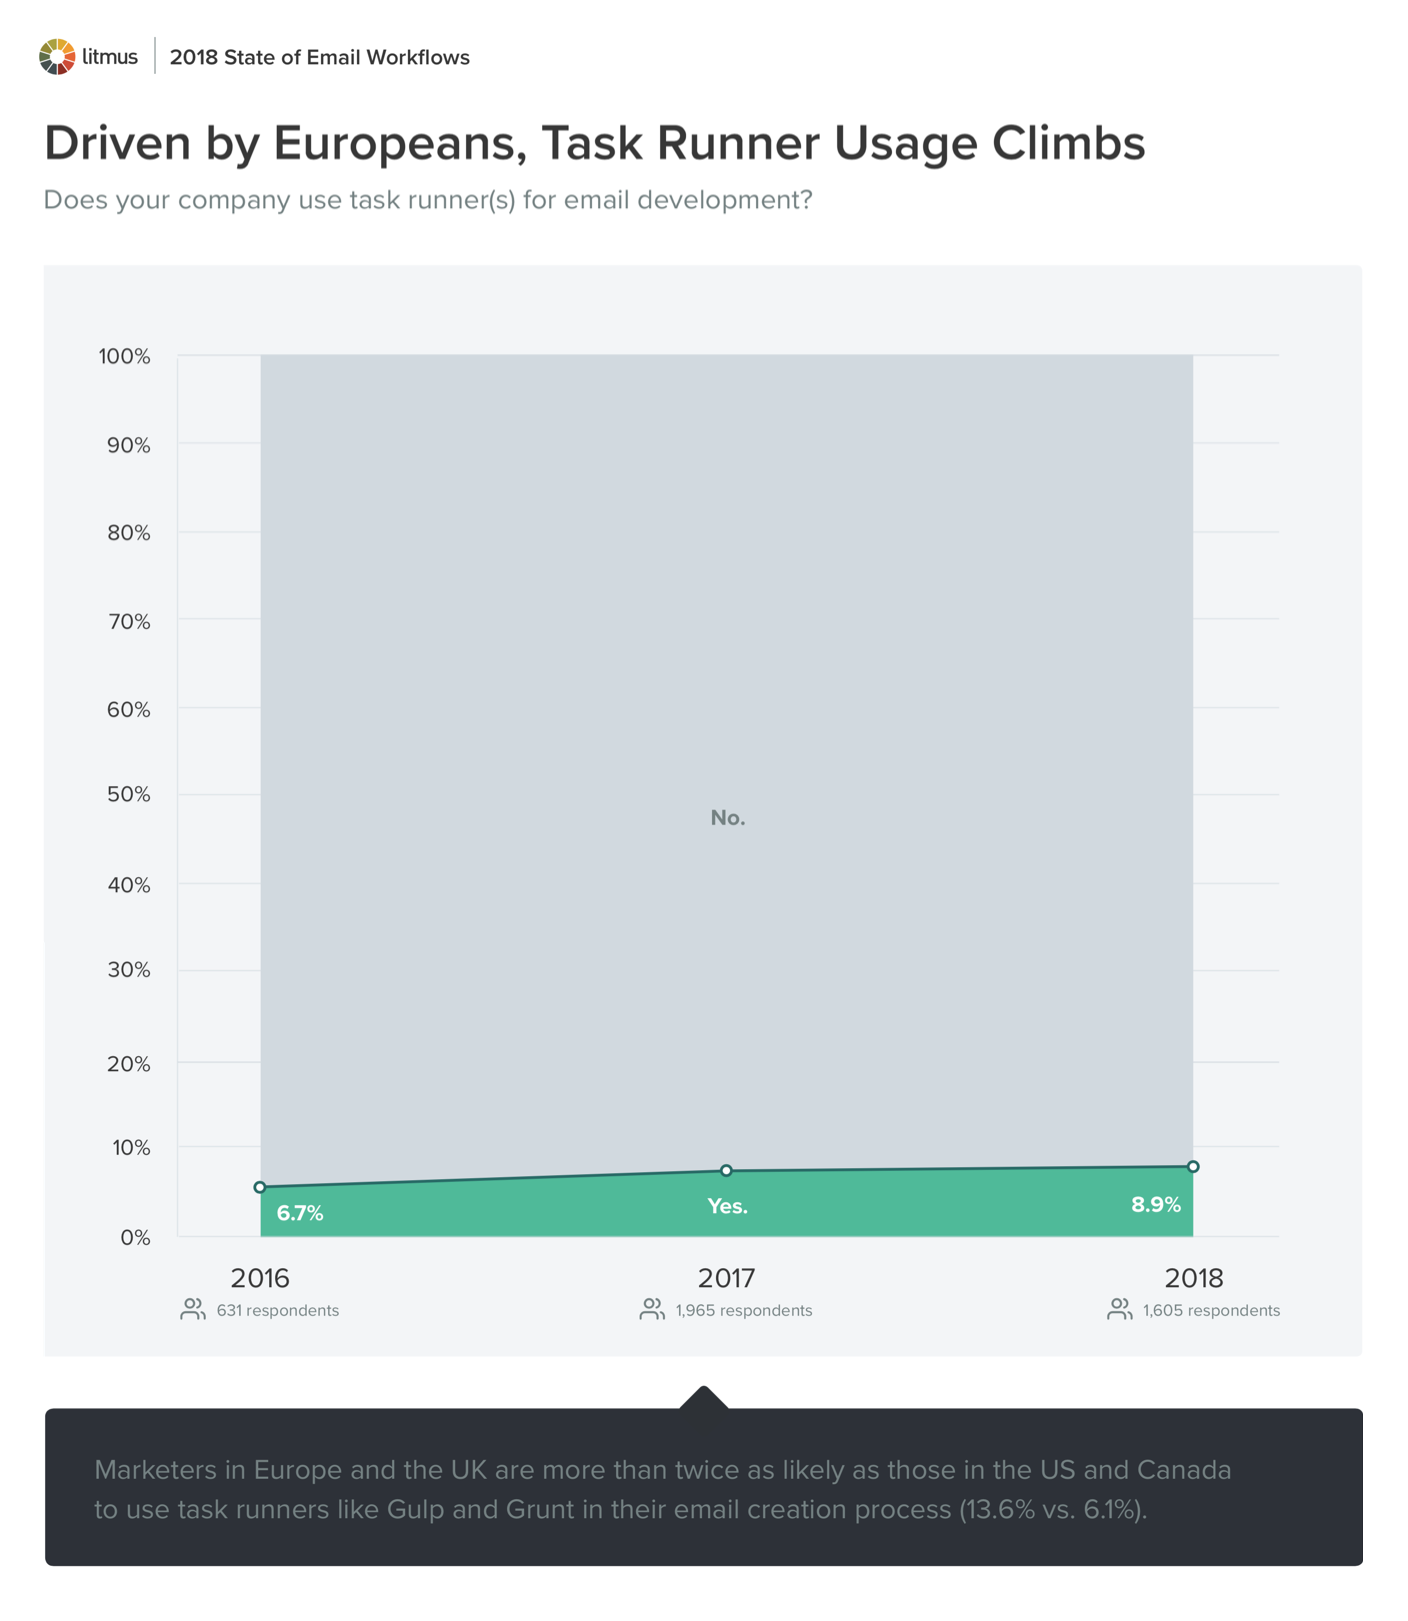 Driven by Europeans, Task Runner Usage Climbs